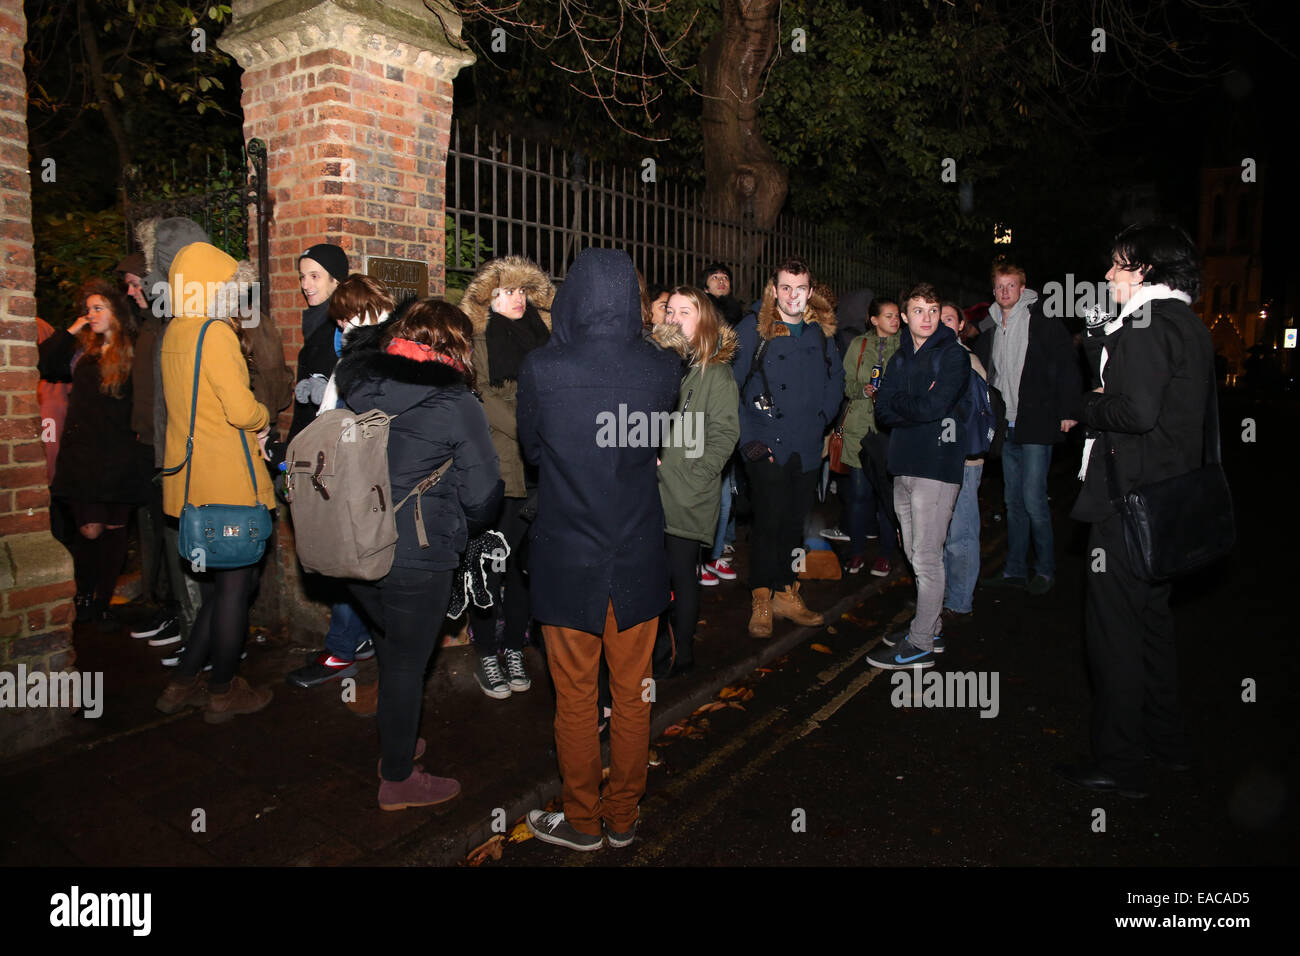 Oxford, UK. 11th November, 2014. Students queuing to see Morgan Freeman, famous American actor, give a speech at - Stock Image